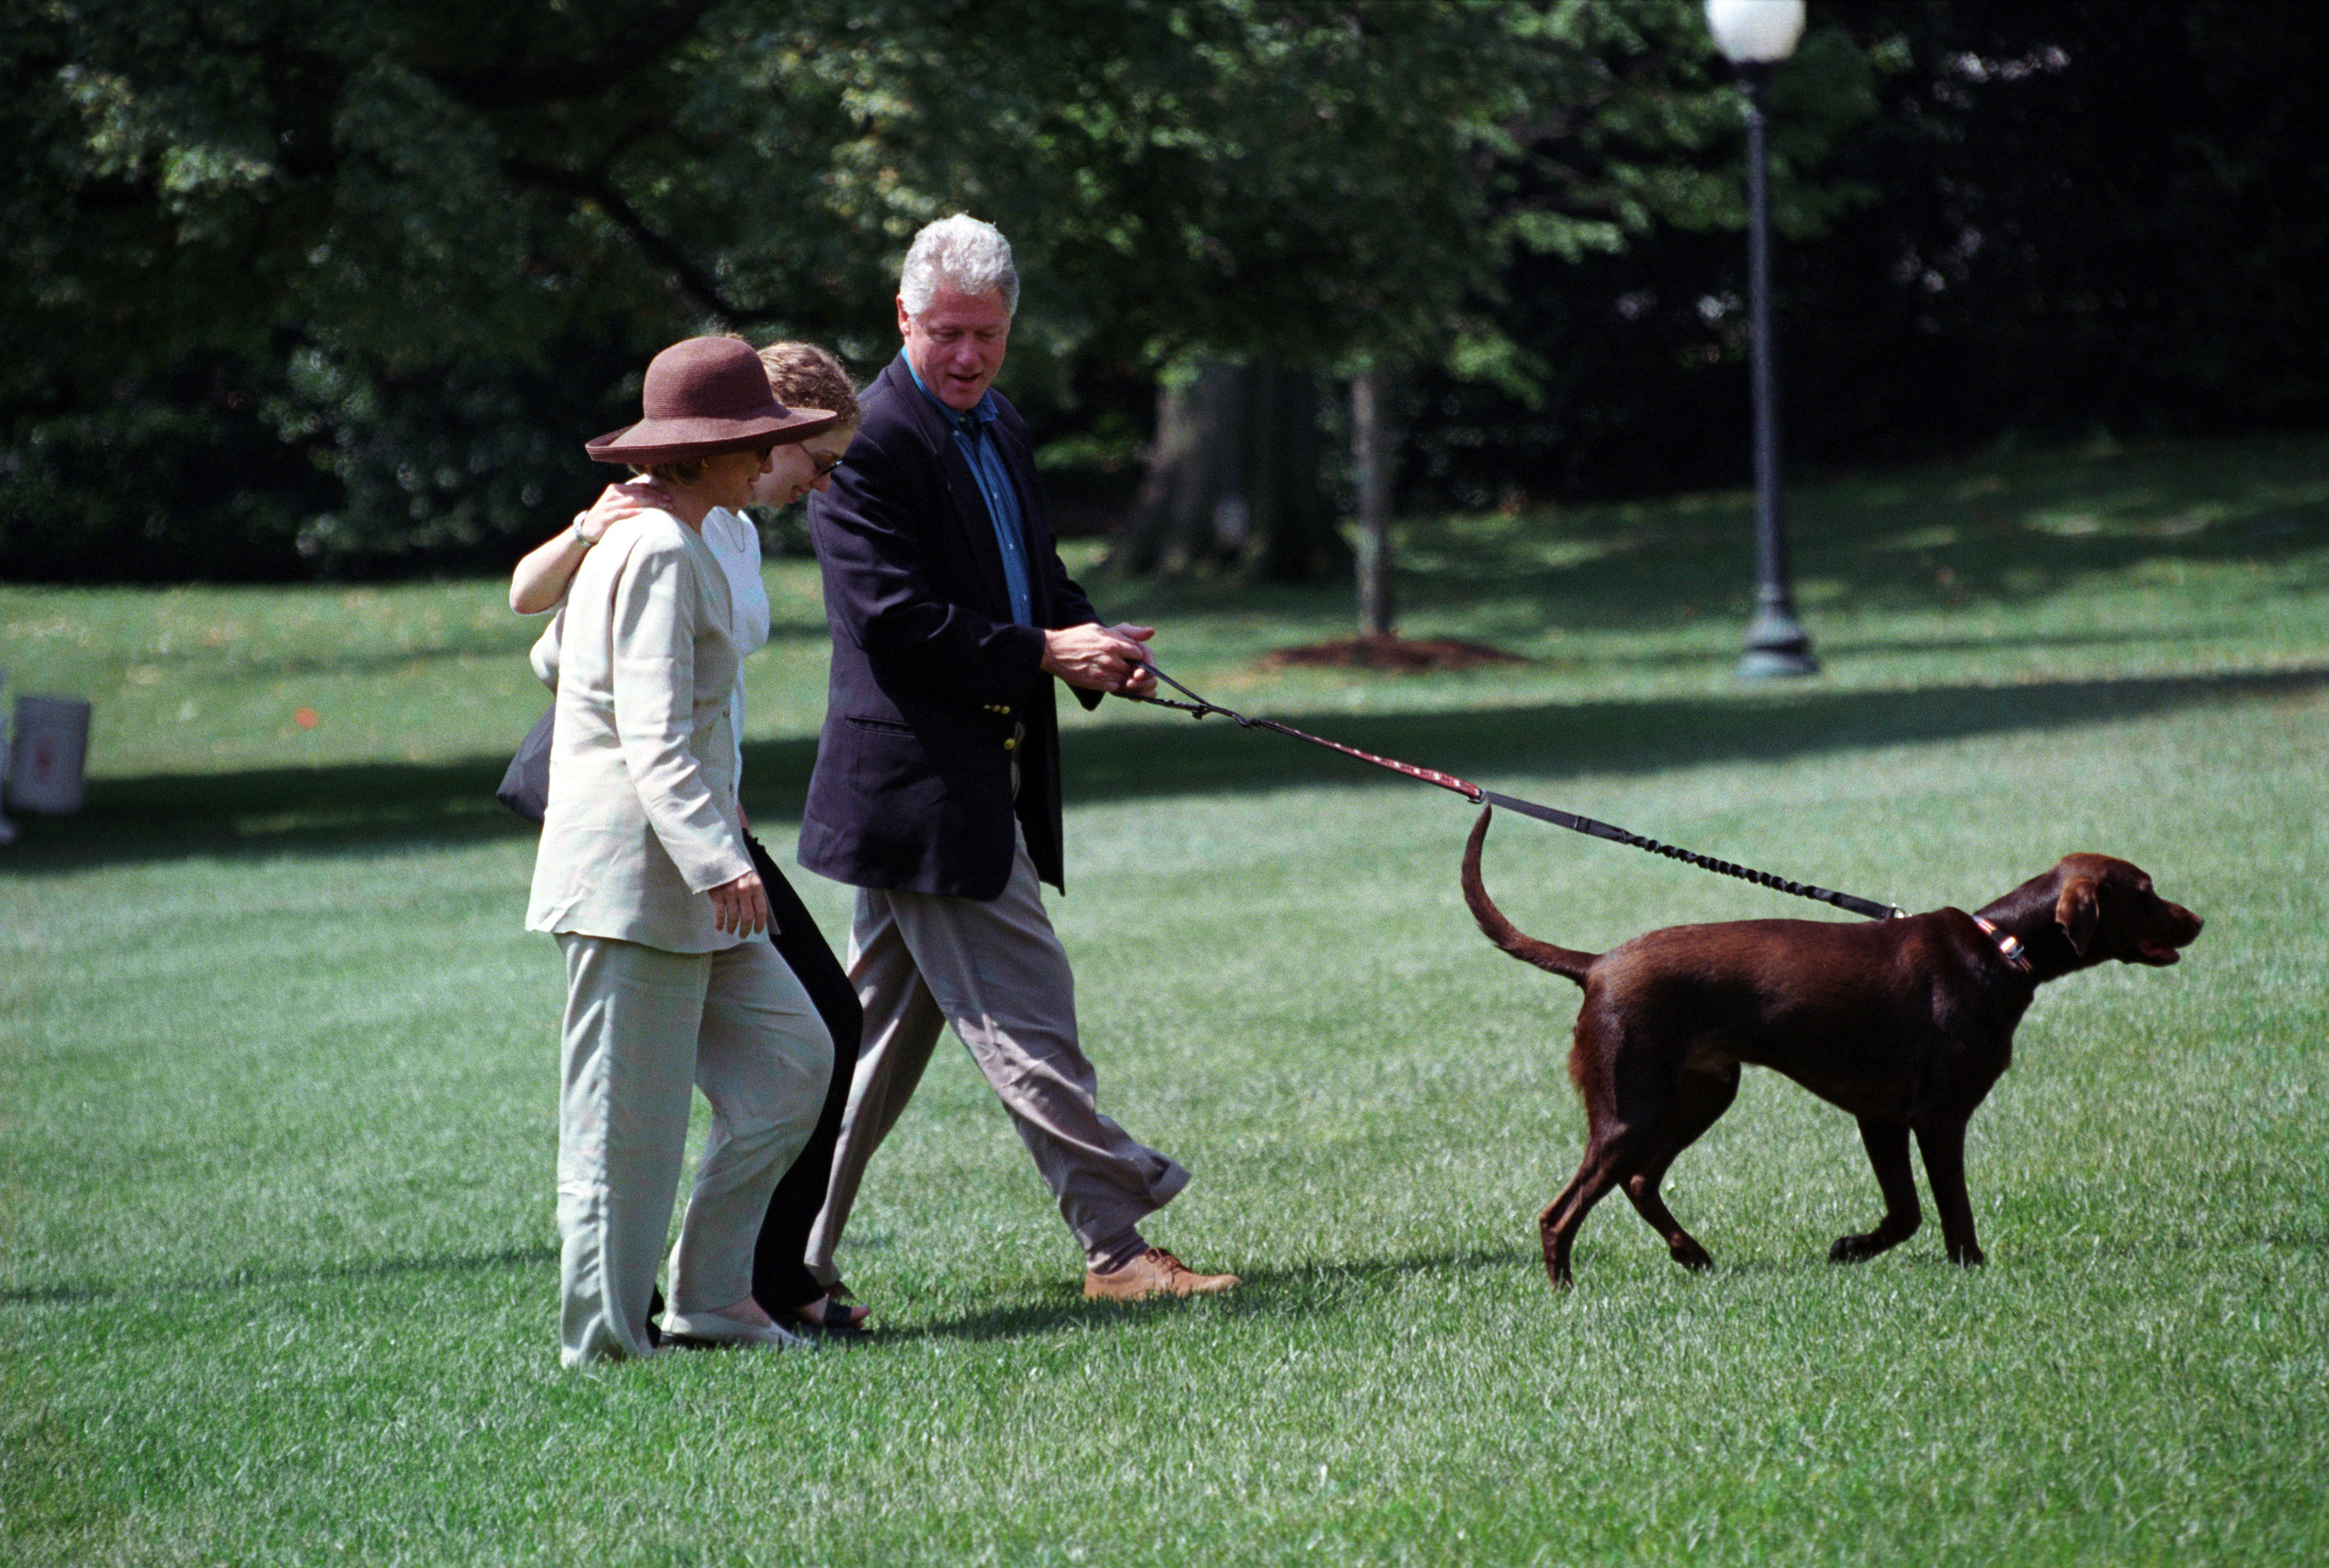 File:Photograph of President William Jefferson Clinton and